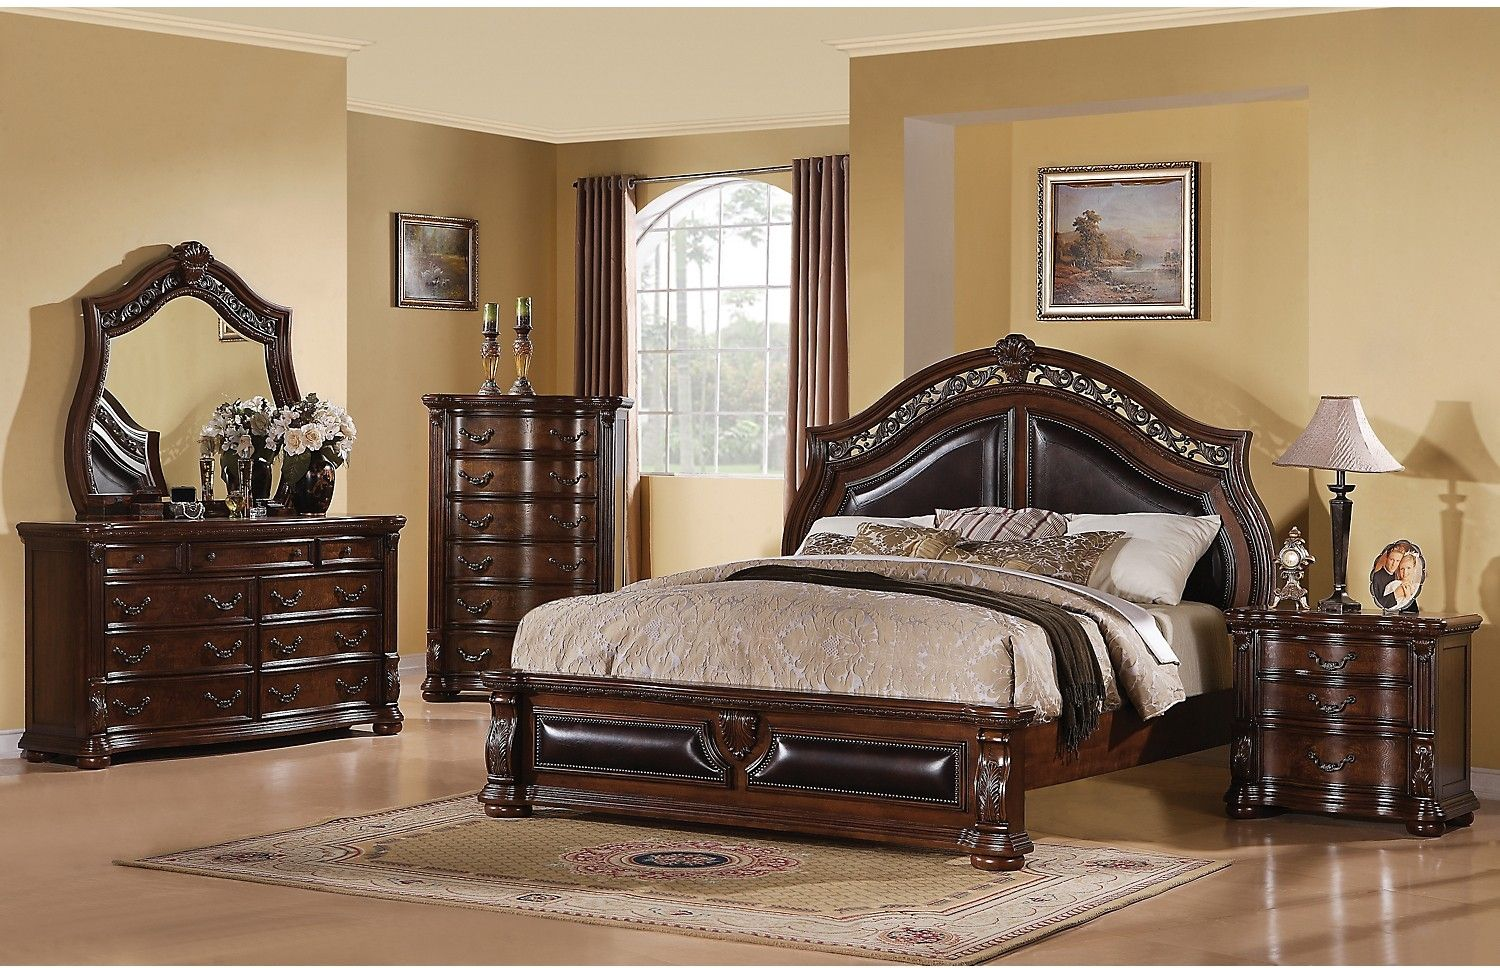 Morocco 8-Piece Queen Bedroom Package | Upholstered bedroom ...